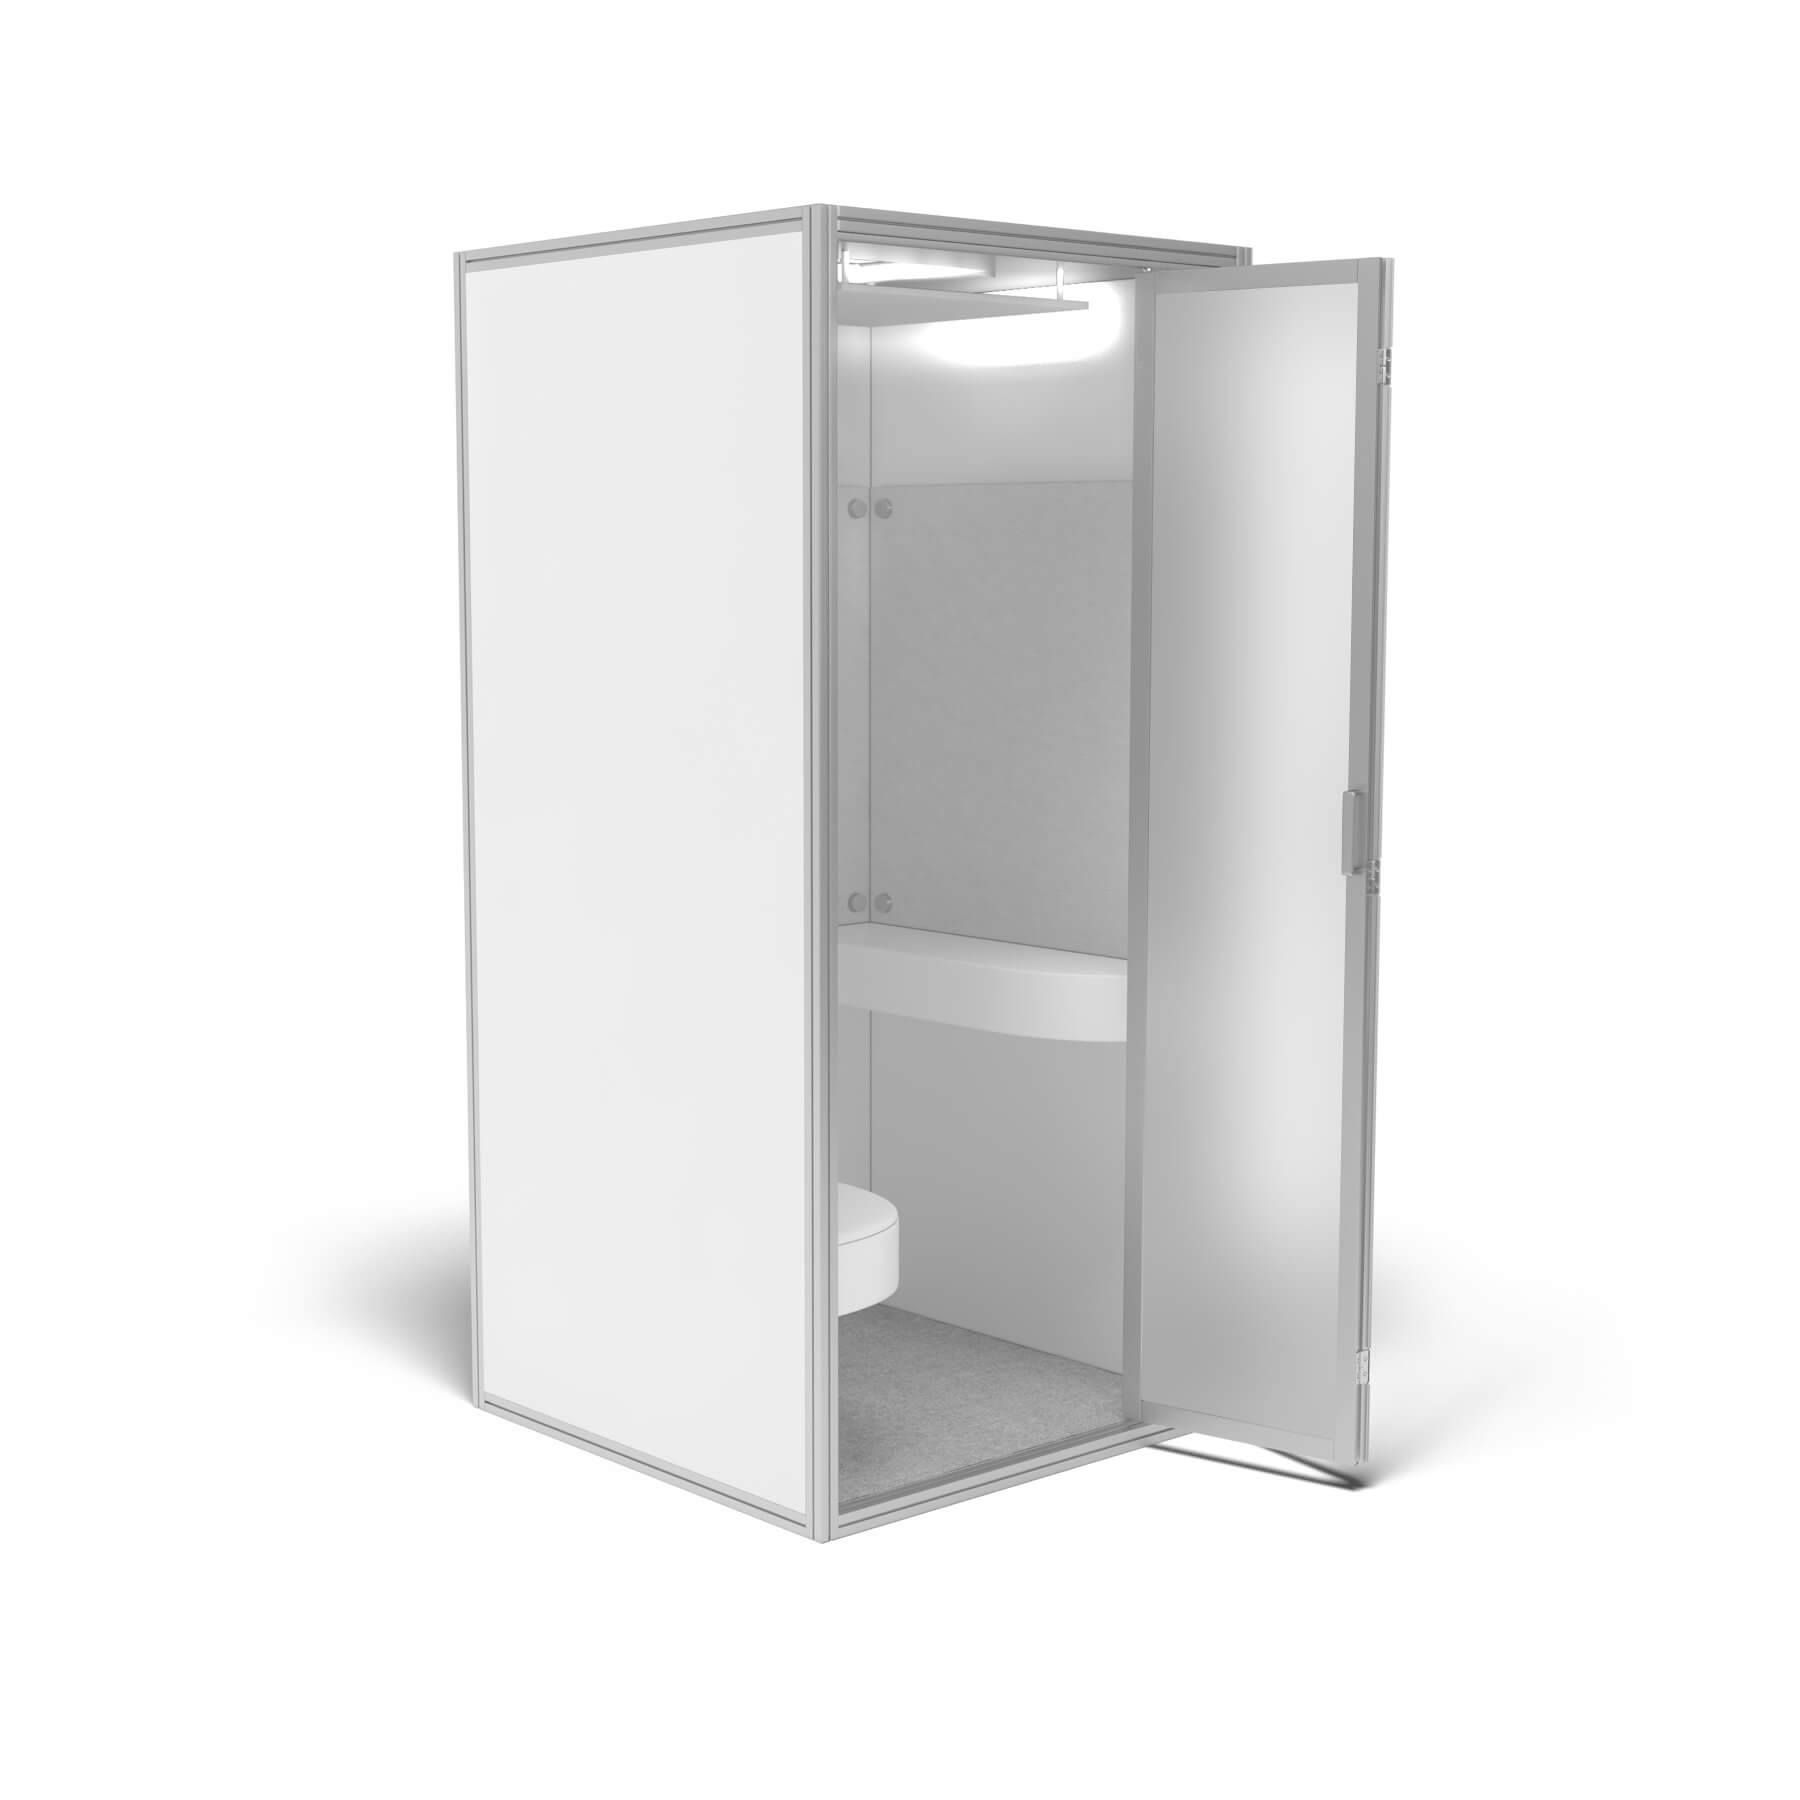 cubicall - modern phone booth